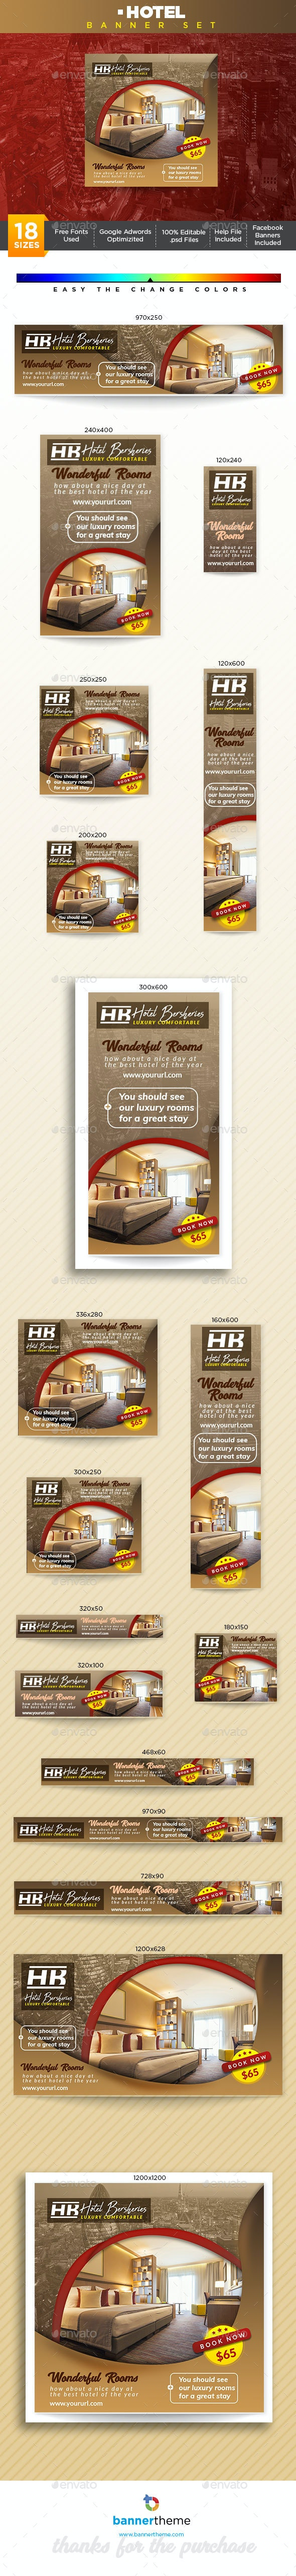 Hotel Banner - Banners & Ads Web Elements